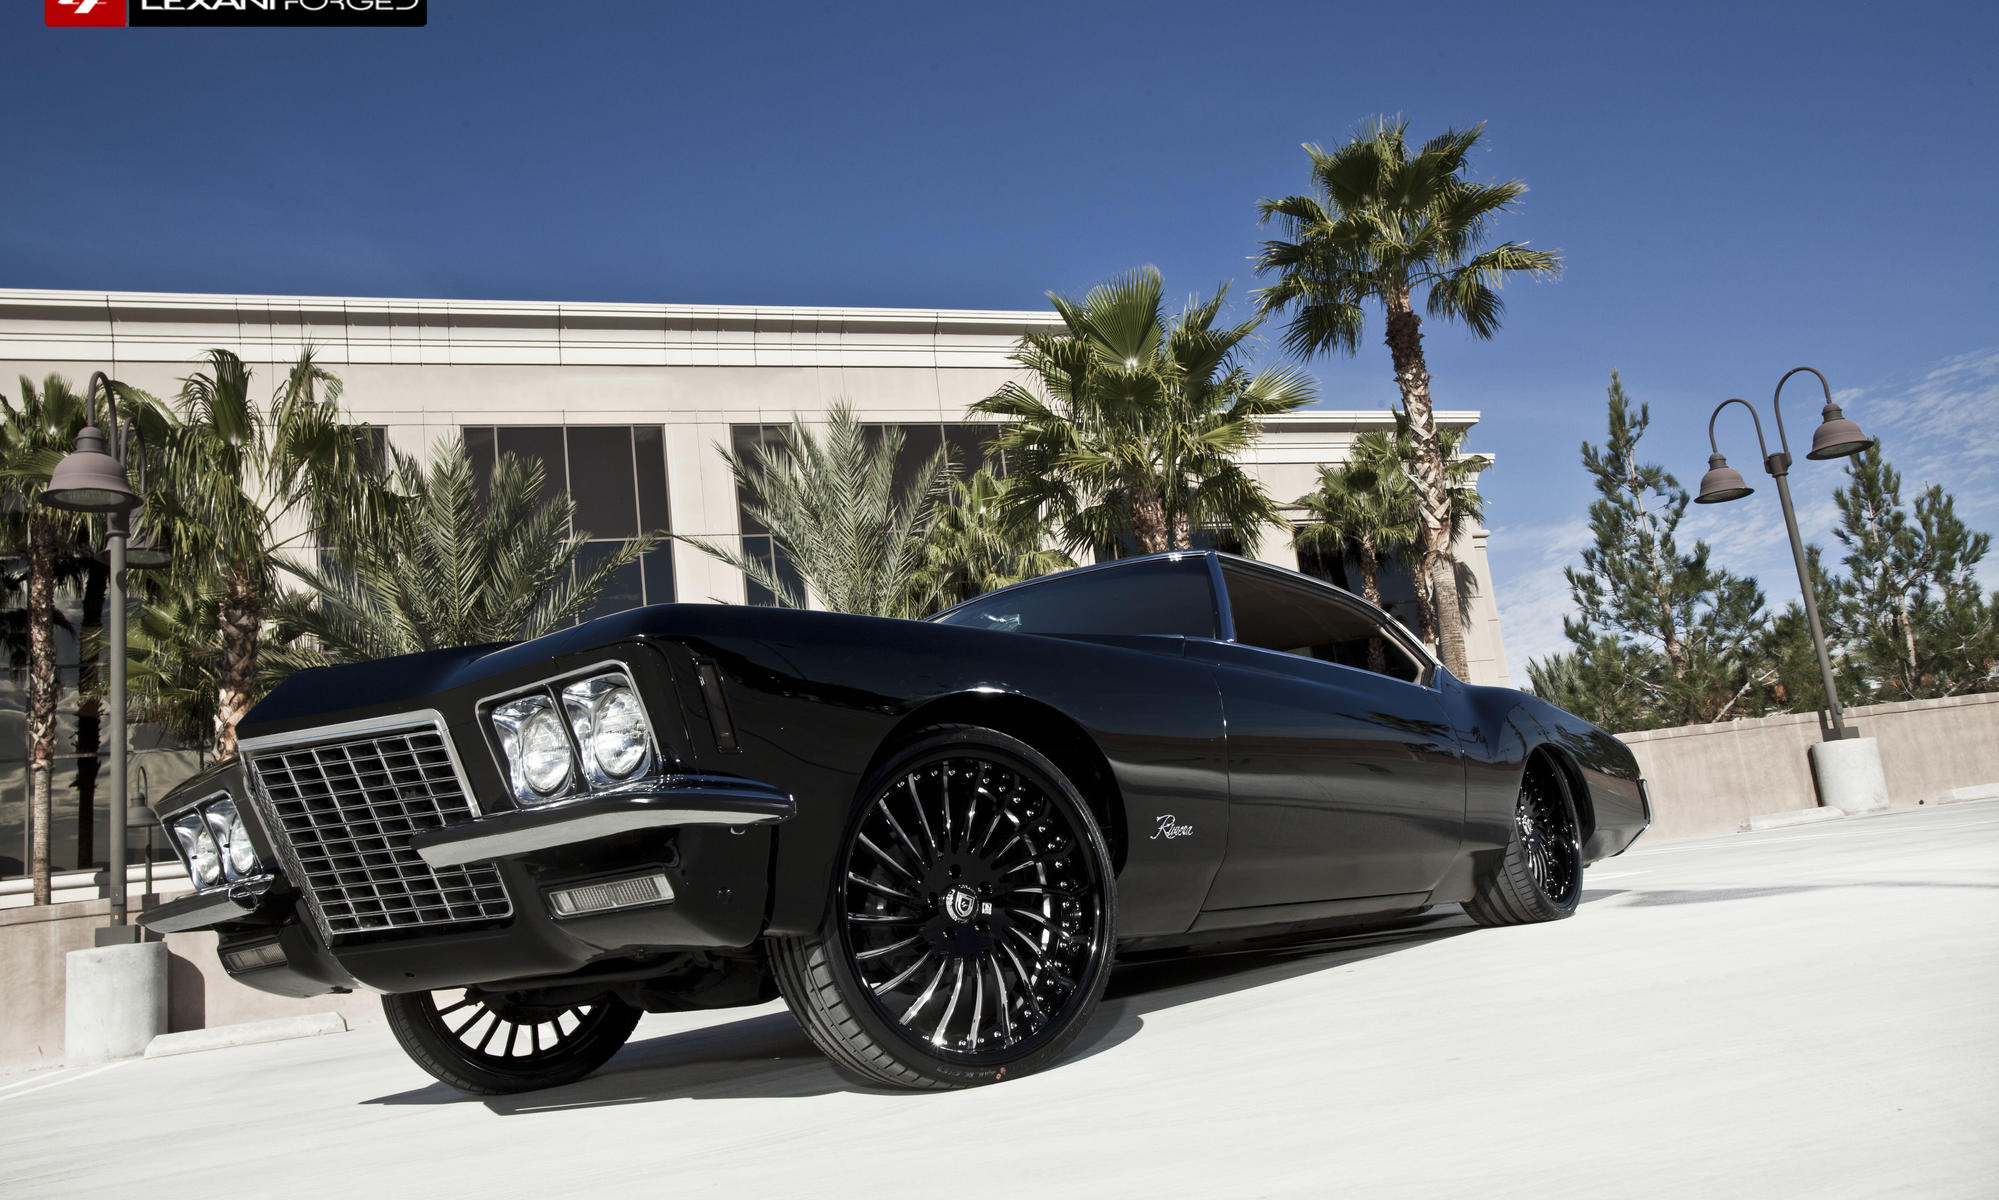 1972 Buick Riviera with black and chrome LF-712.